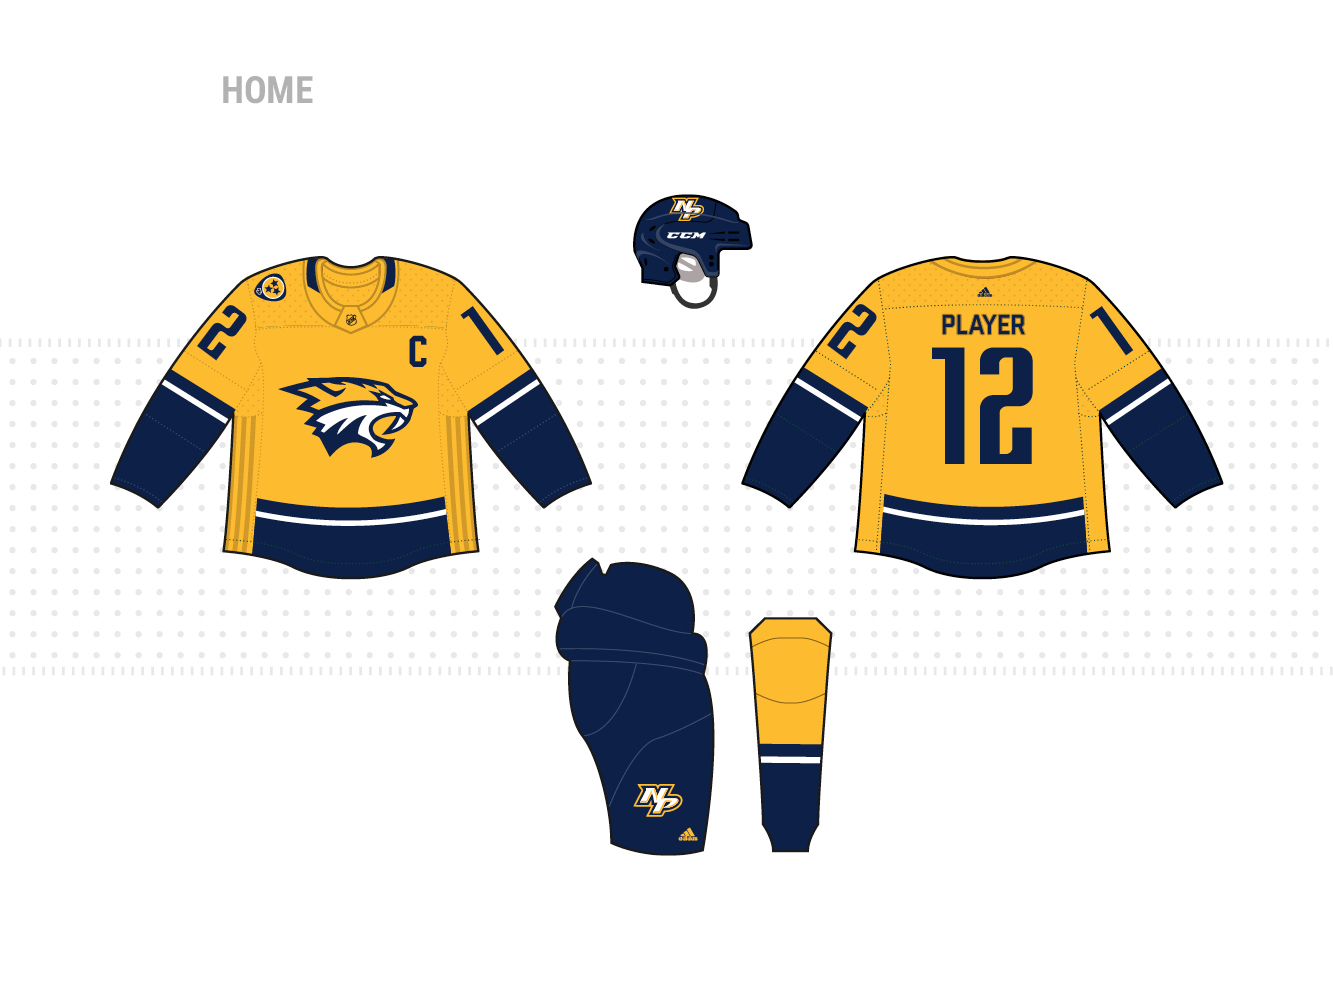 reputable site 4830b 37e43 Adidas NHL Jersey Concepts - Page 2 - Concepts - Chris ...